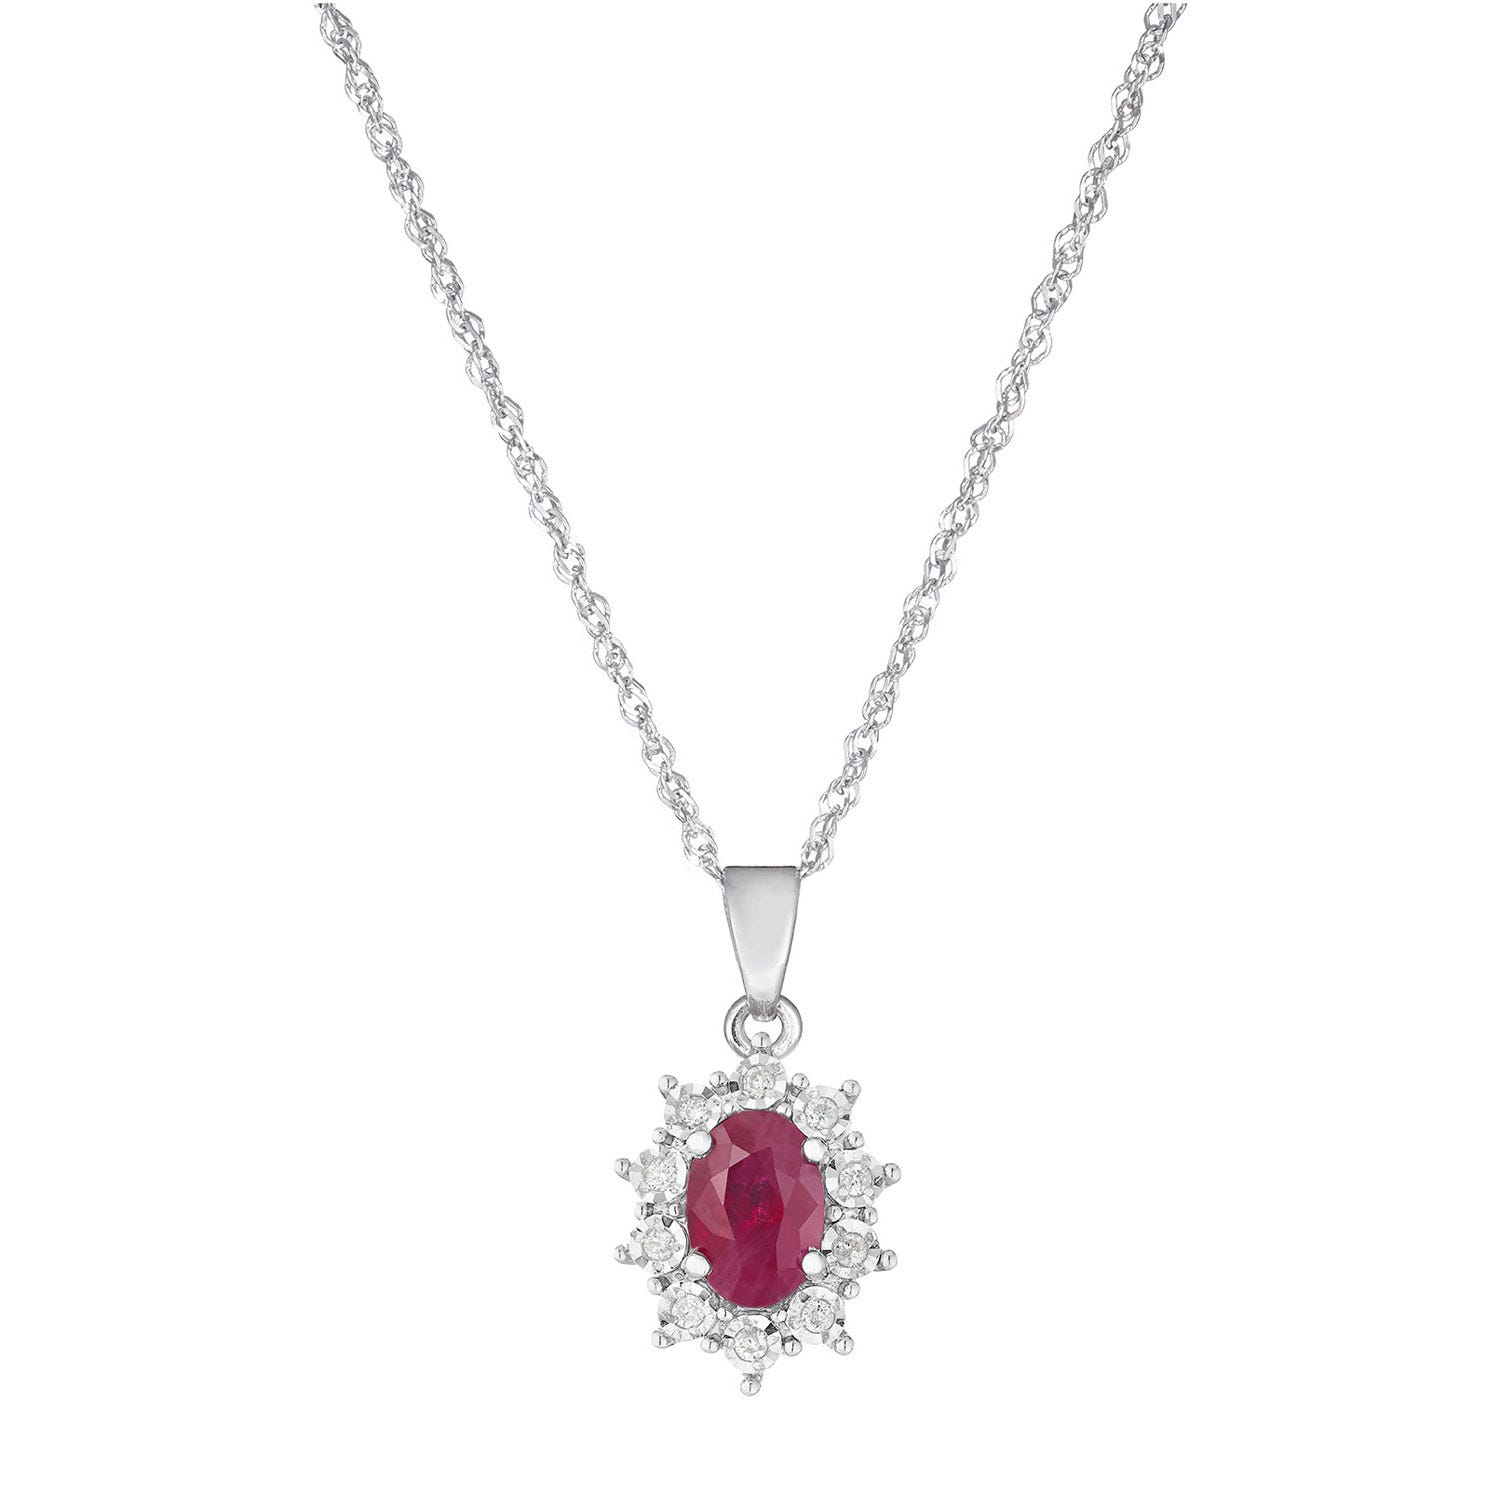 9ct white gold oval ruby and diamond pendant